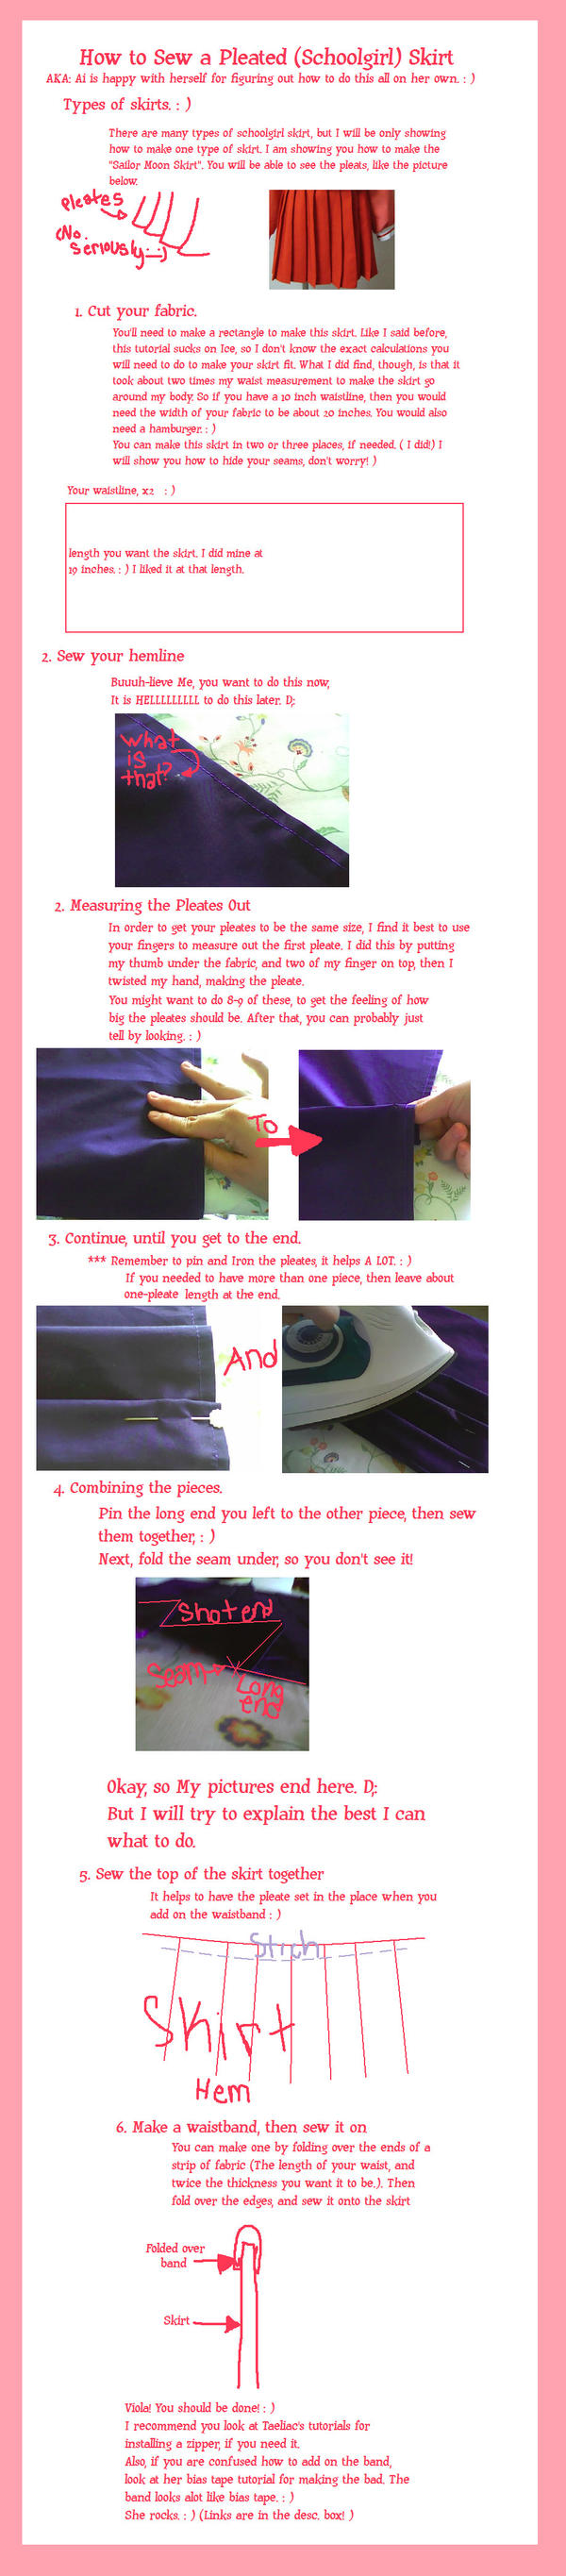 Pleated Skirt Tutorial by Aidotcom